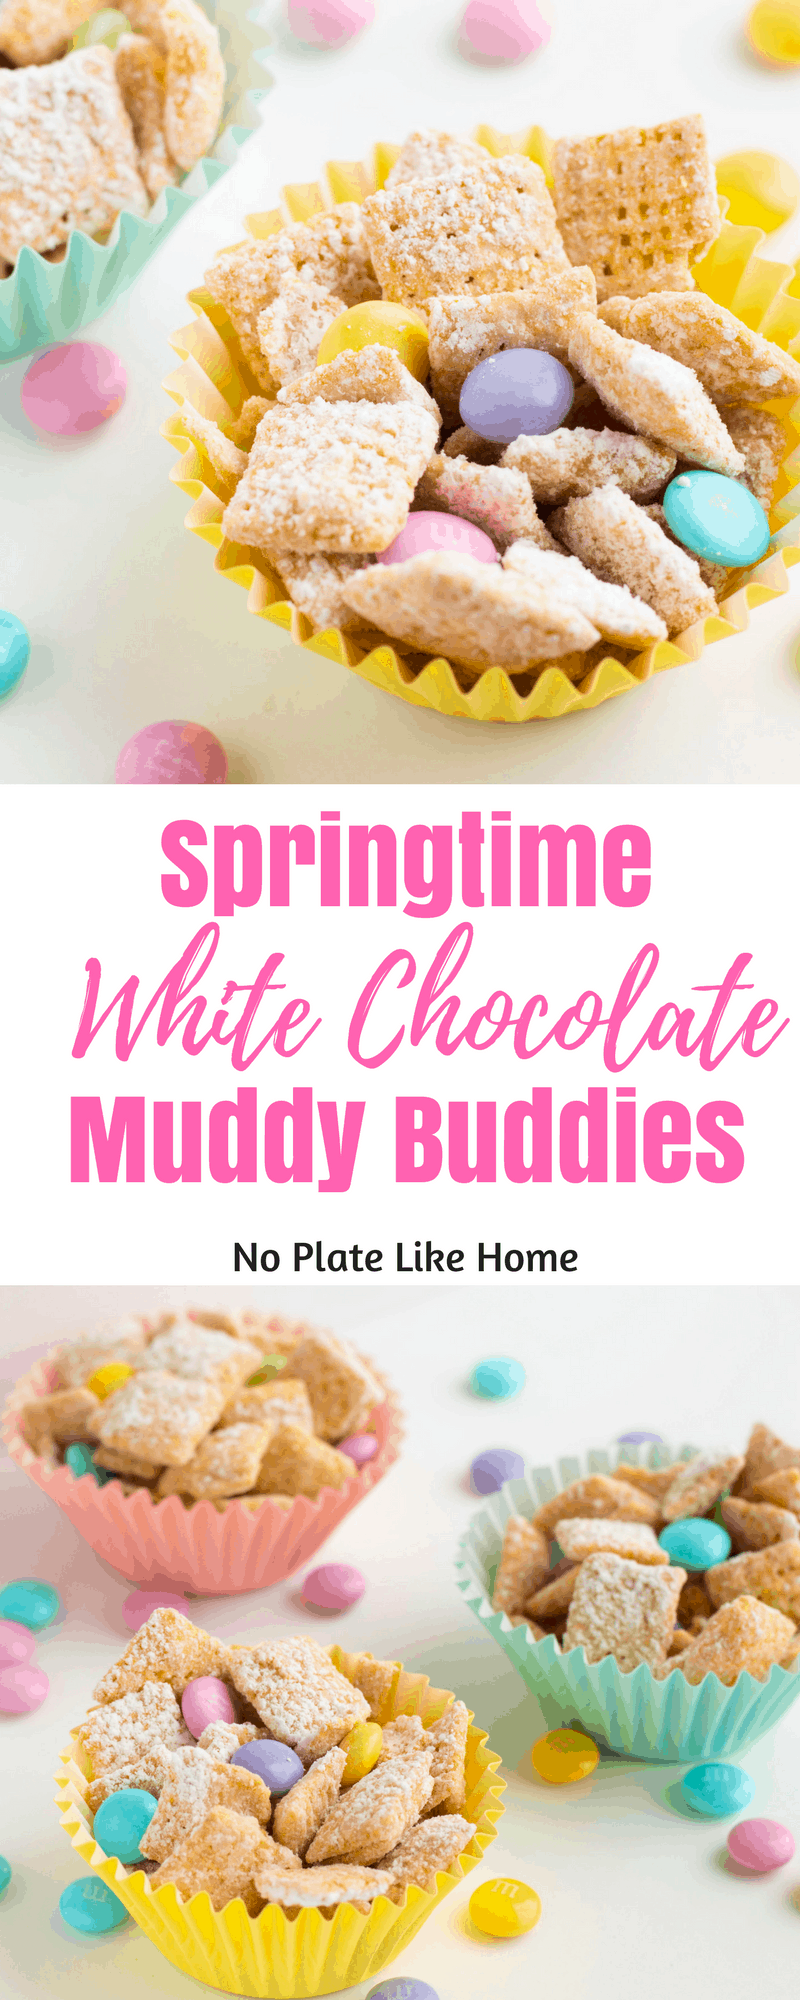 Springtime White Chocolate Muddy Buddies